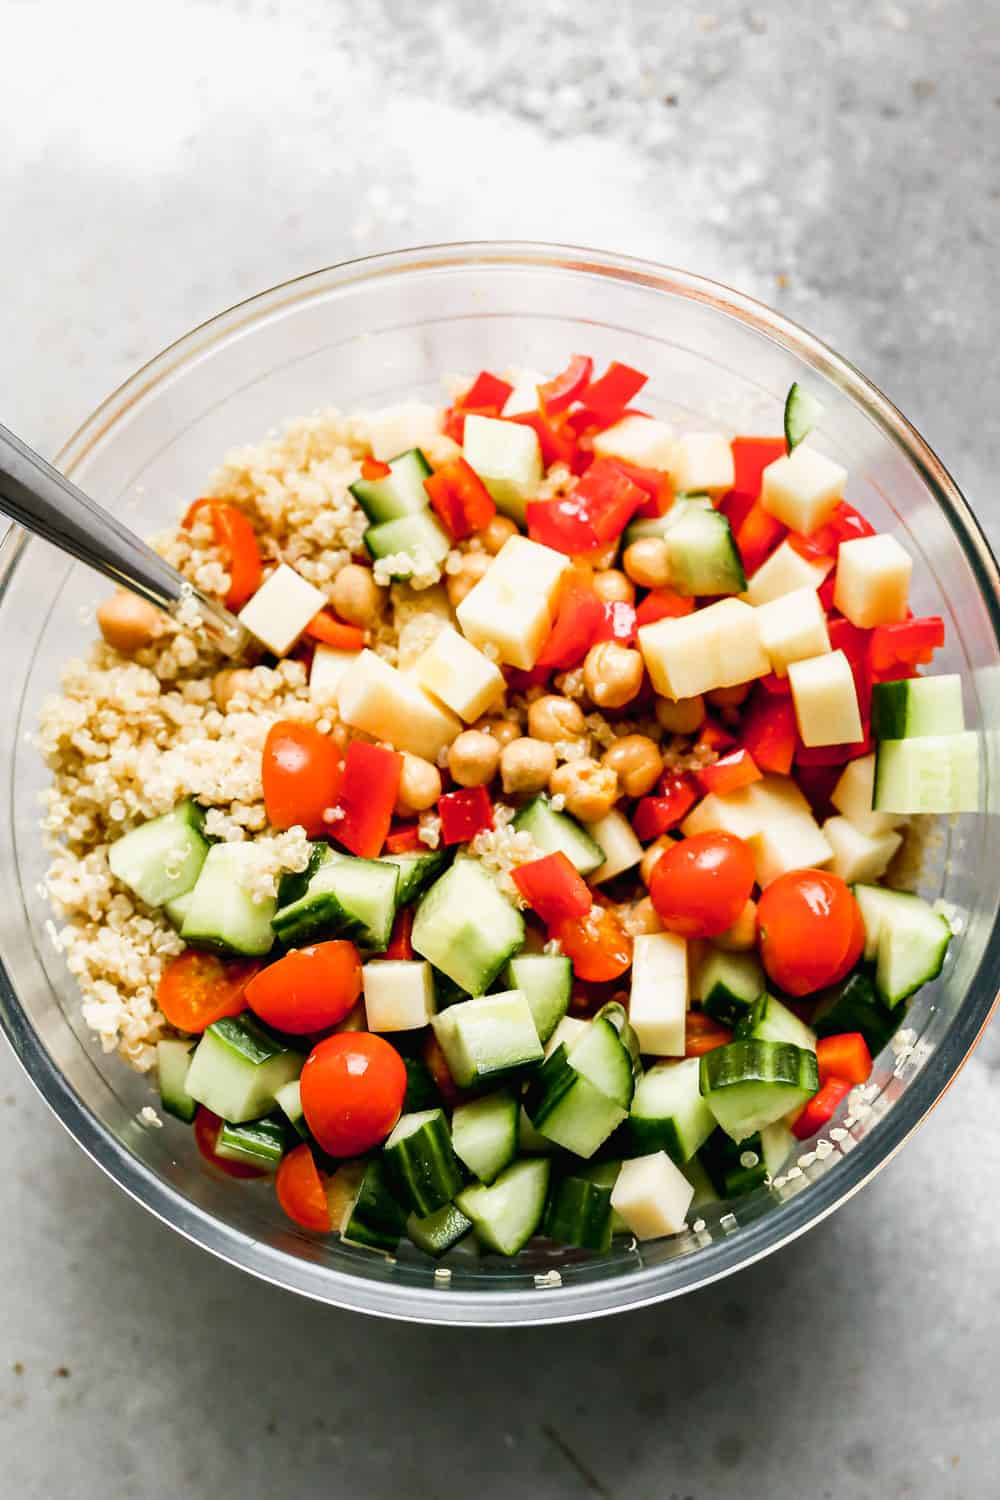 Packed with fuffy quinoa, crisp veggies, chickpeas, salty provolone cheese, and a zesty lemon vinaigrette, this easy Quinoa Salad is the perfect lunch on its own, or base for chicken, salmon or steak for dinner. 30 minutes and done!